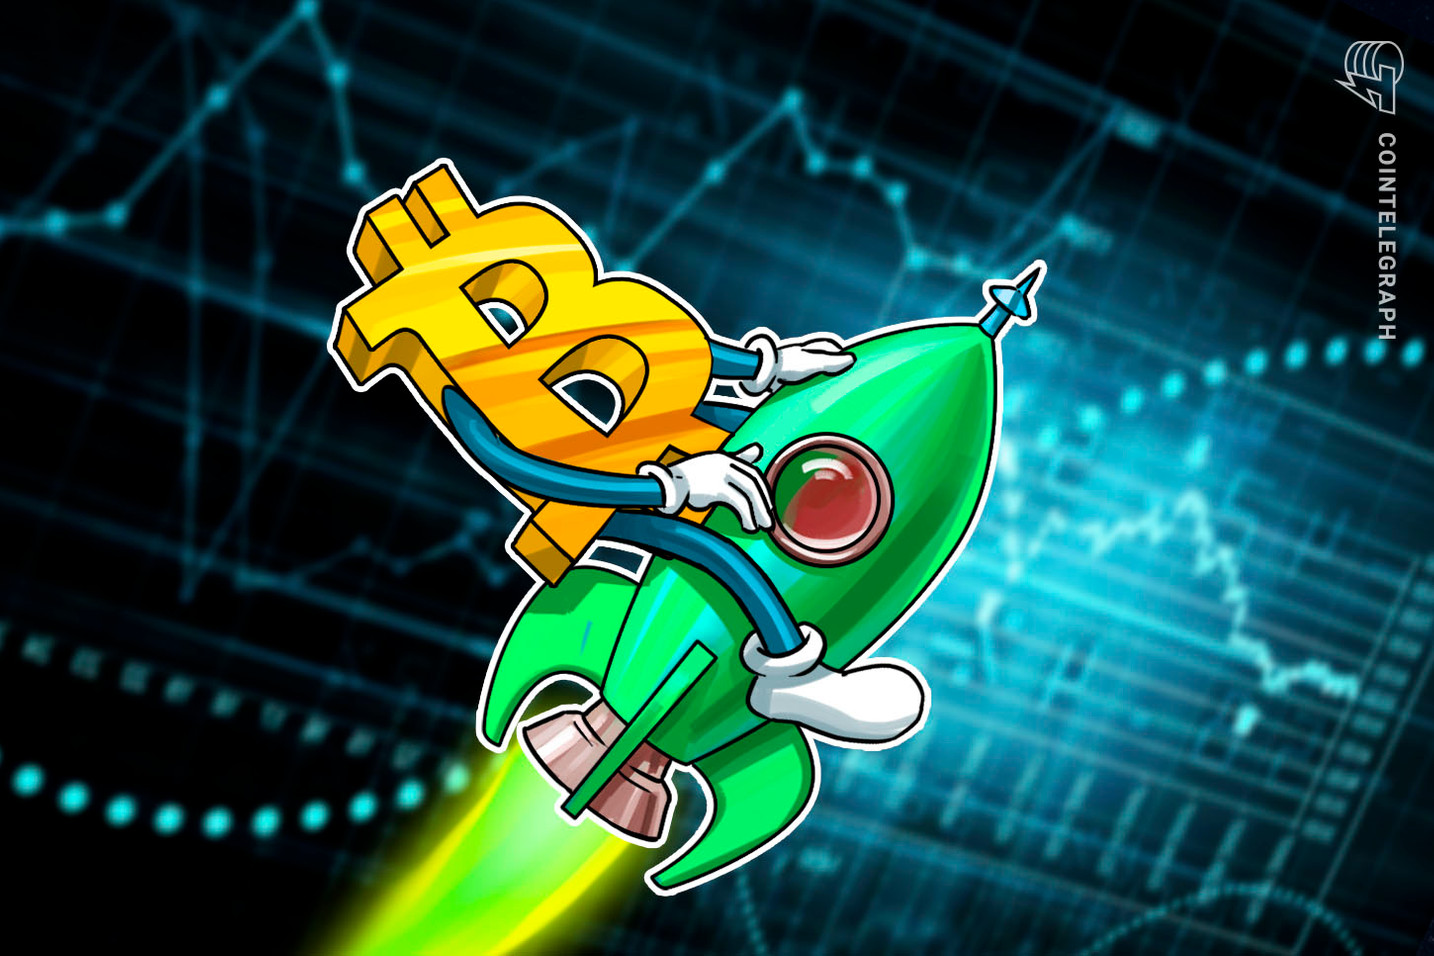 3 Key Factors Why Bitcoin Price Exploded to $9.4K Overnight